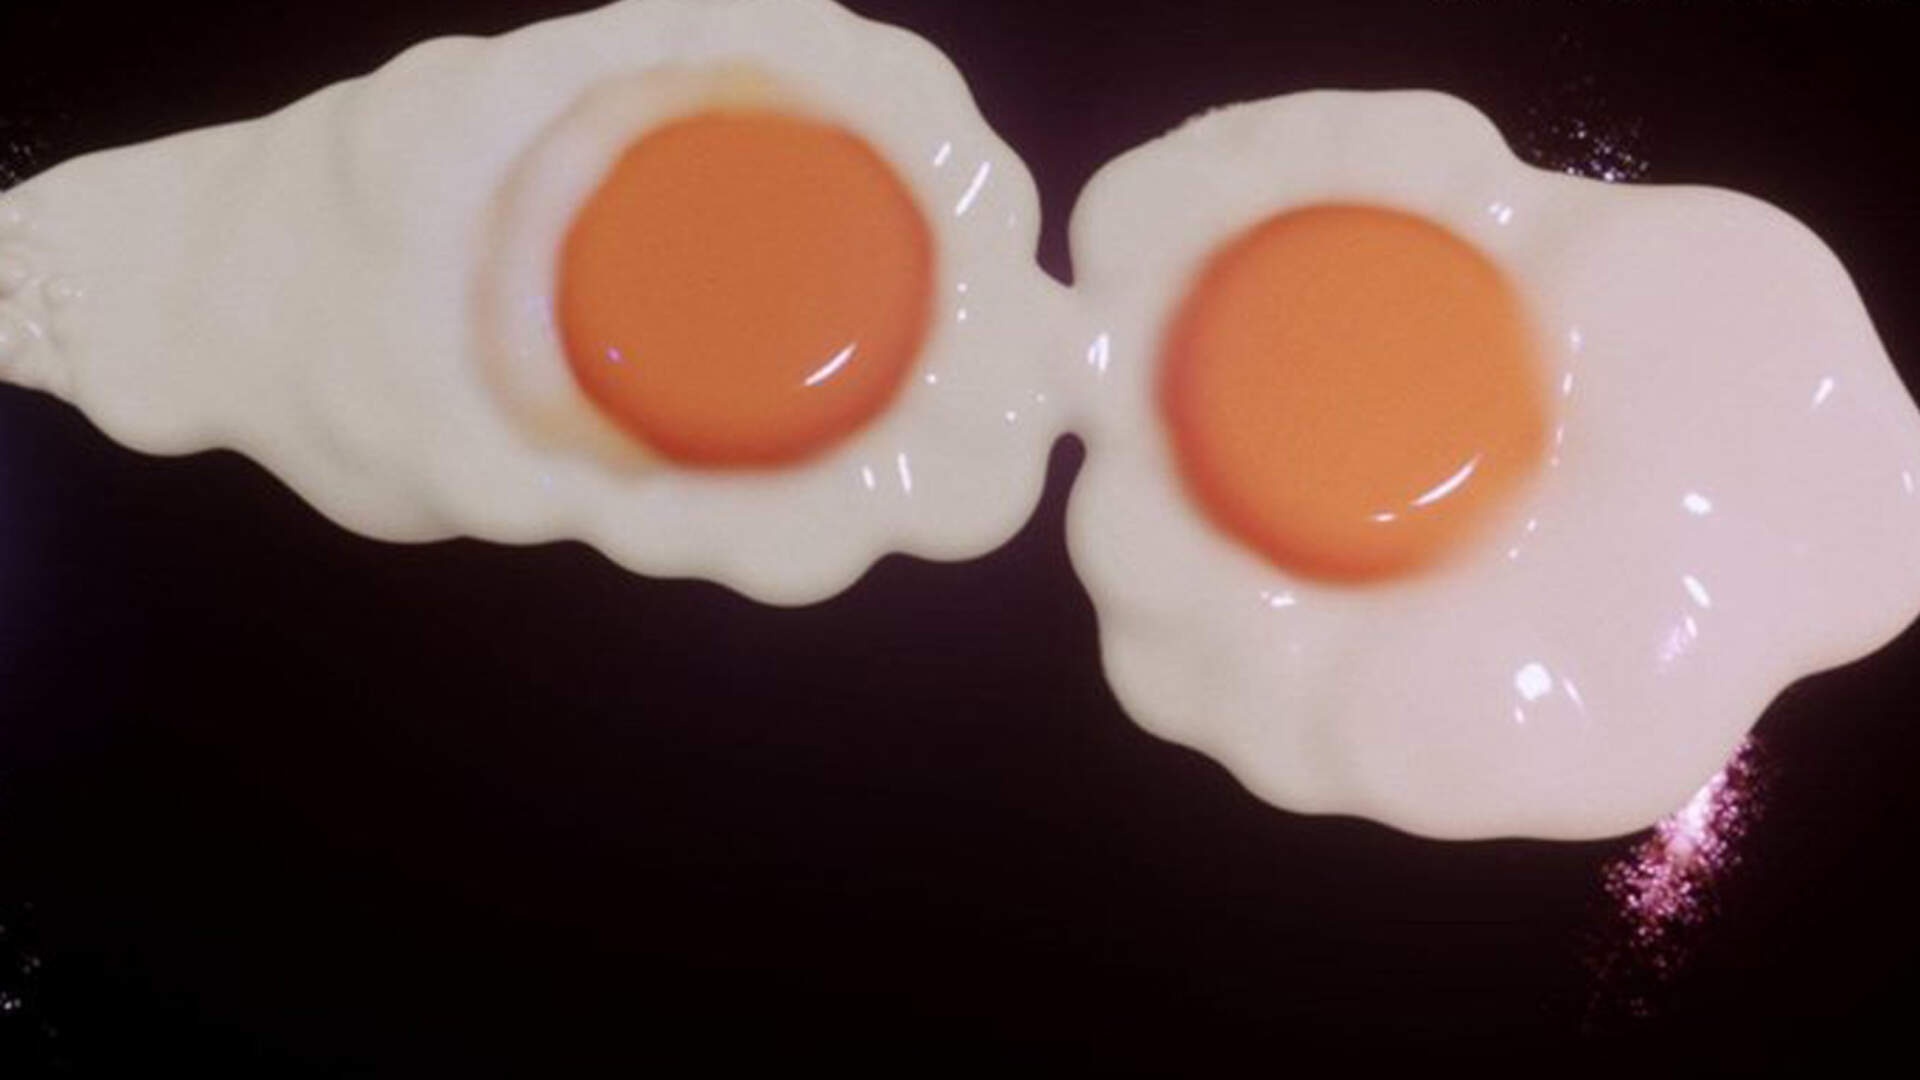 This Picture of Eggs From Dreams is Currently Blowing Everyone's Mind